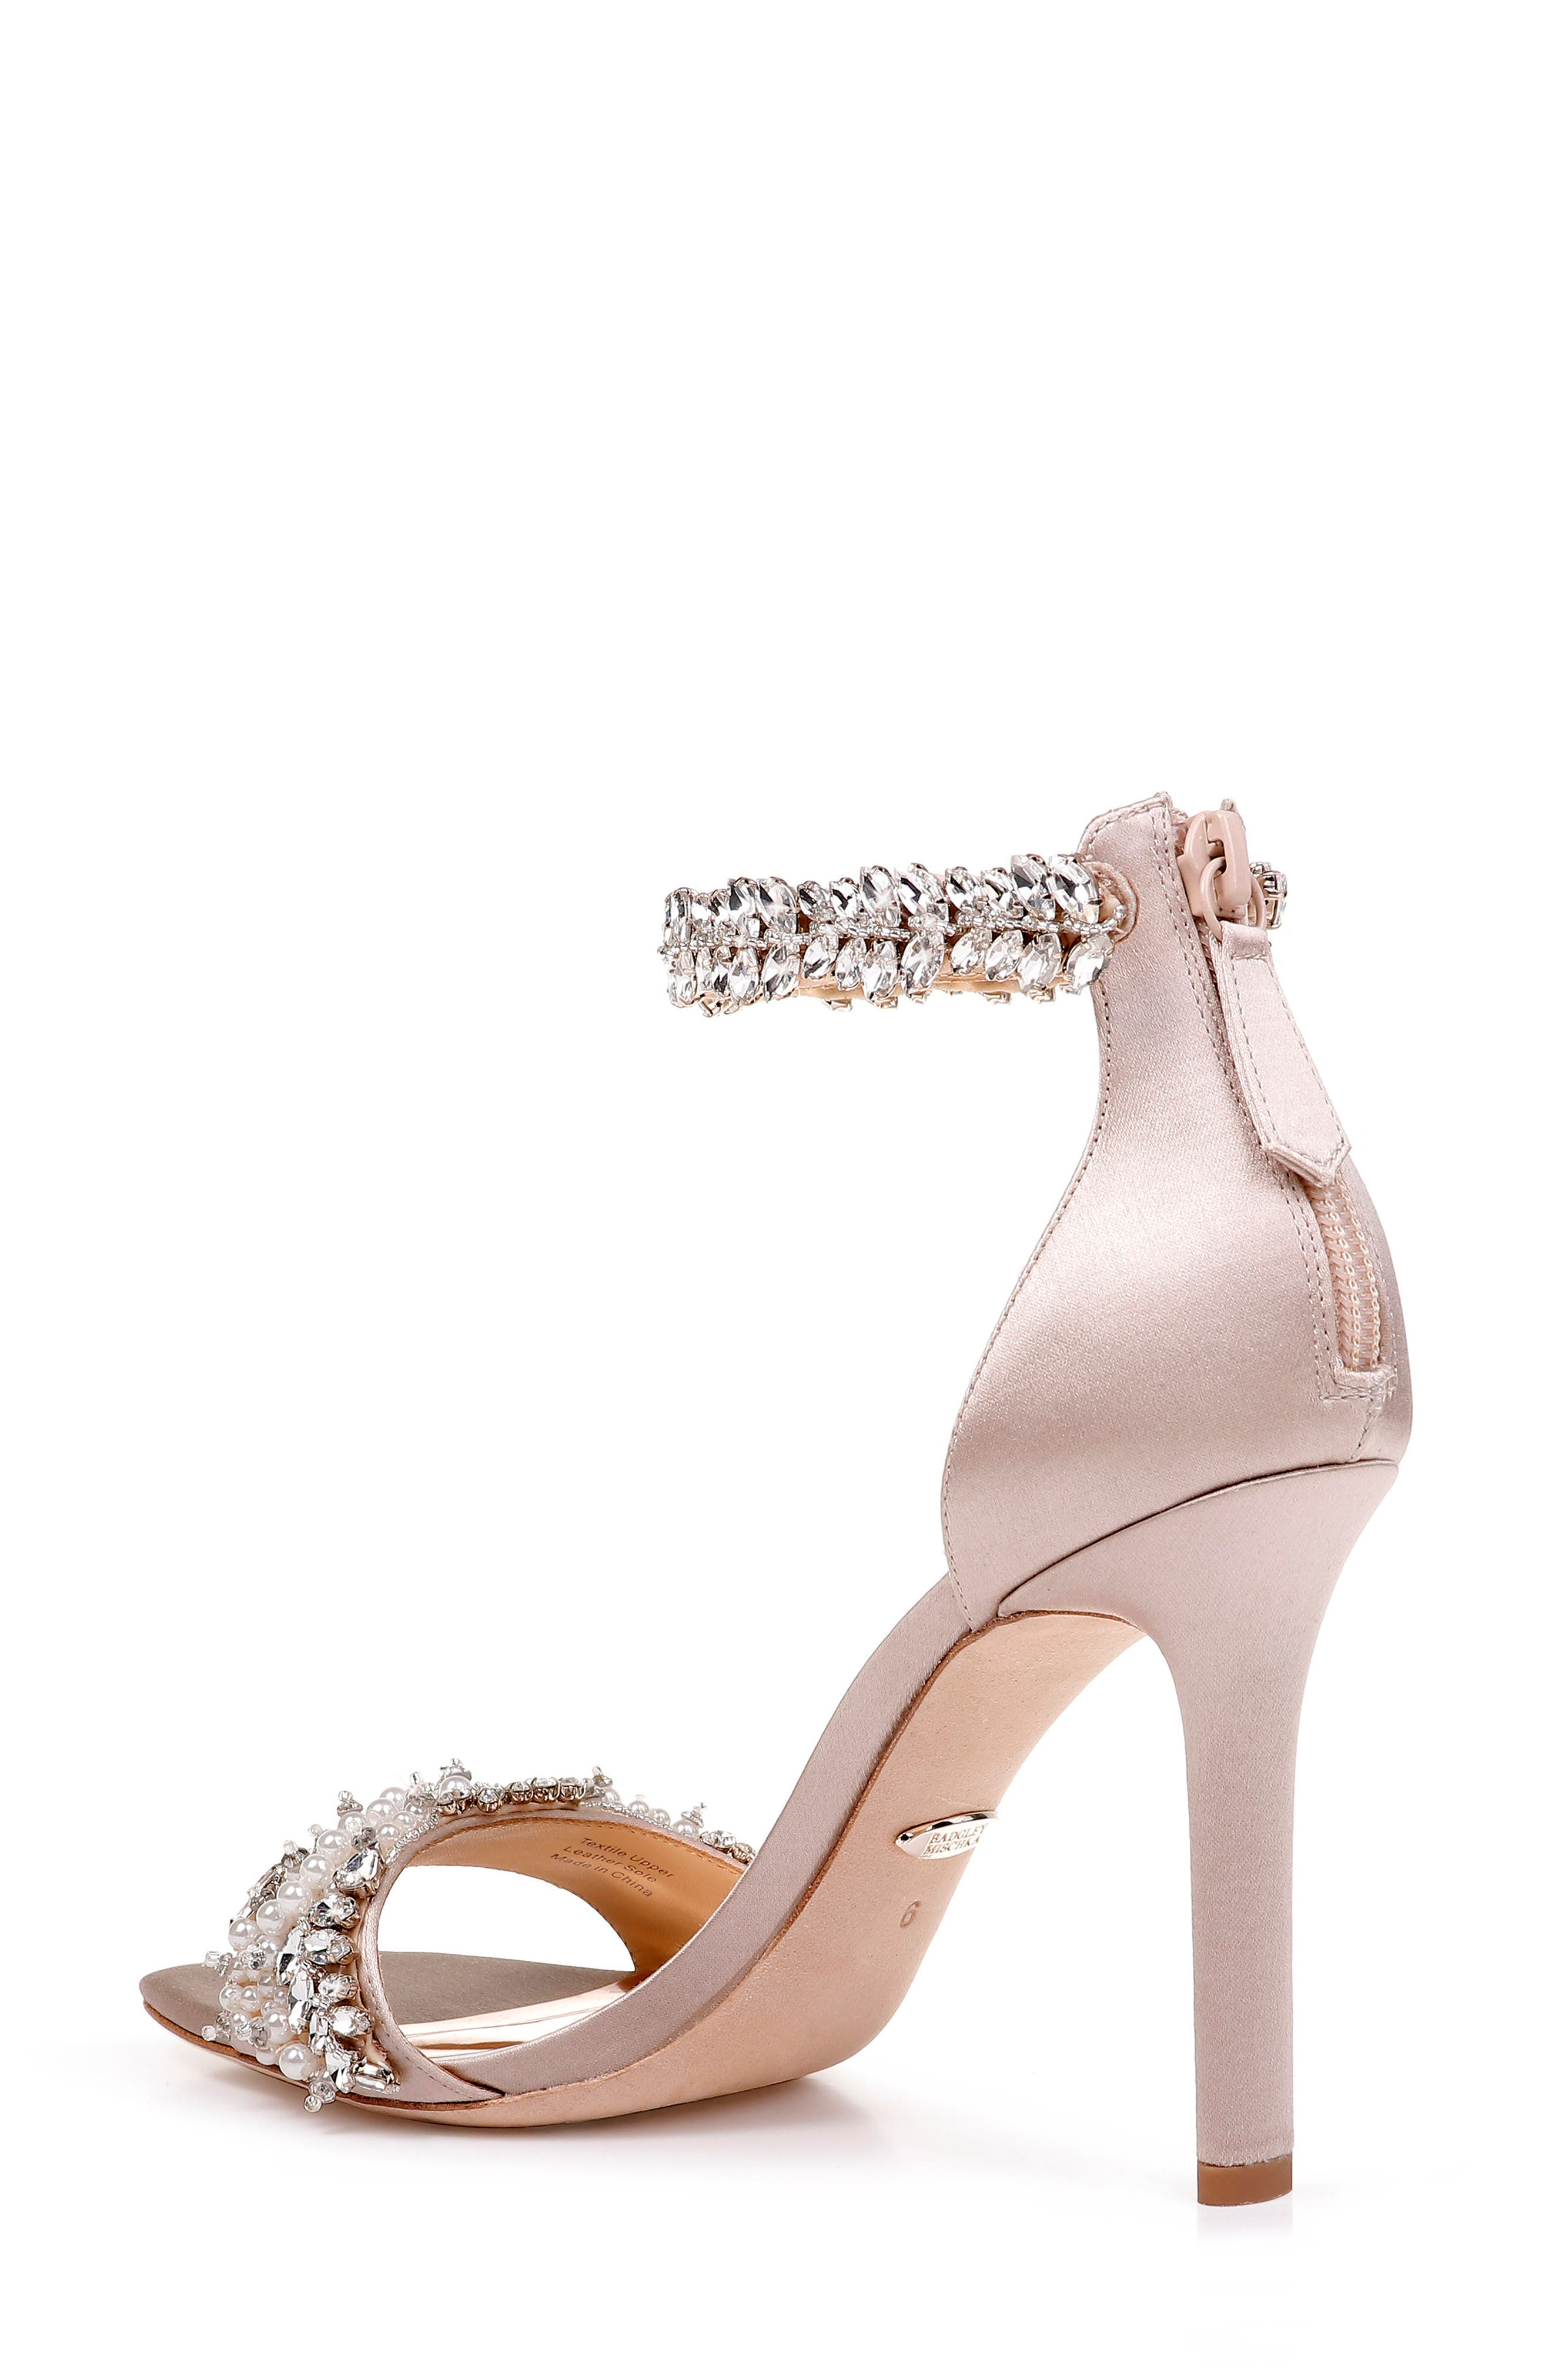 BADGLEY MISCHKA COLLECTION, Badgley Mischka Fiorenza Crystal & Imitation Pearl Embellished Sandal, Alternate thumbnail 2, color, BEIGE SATIN